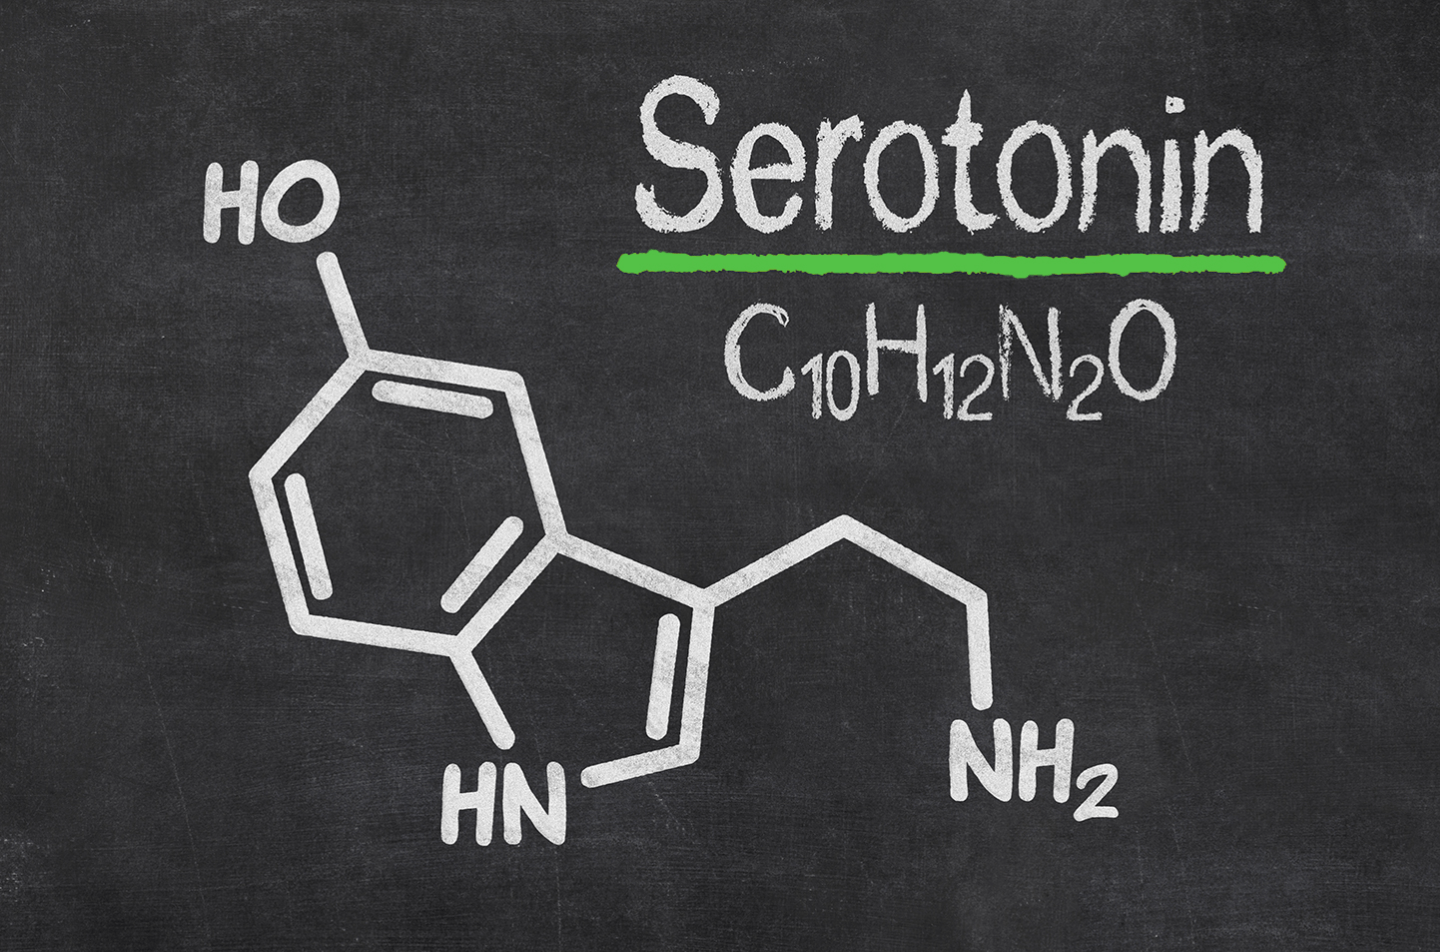 Serotonin: The Happy Hormone Produced In Our Gut